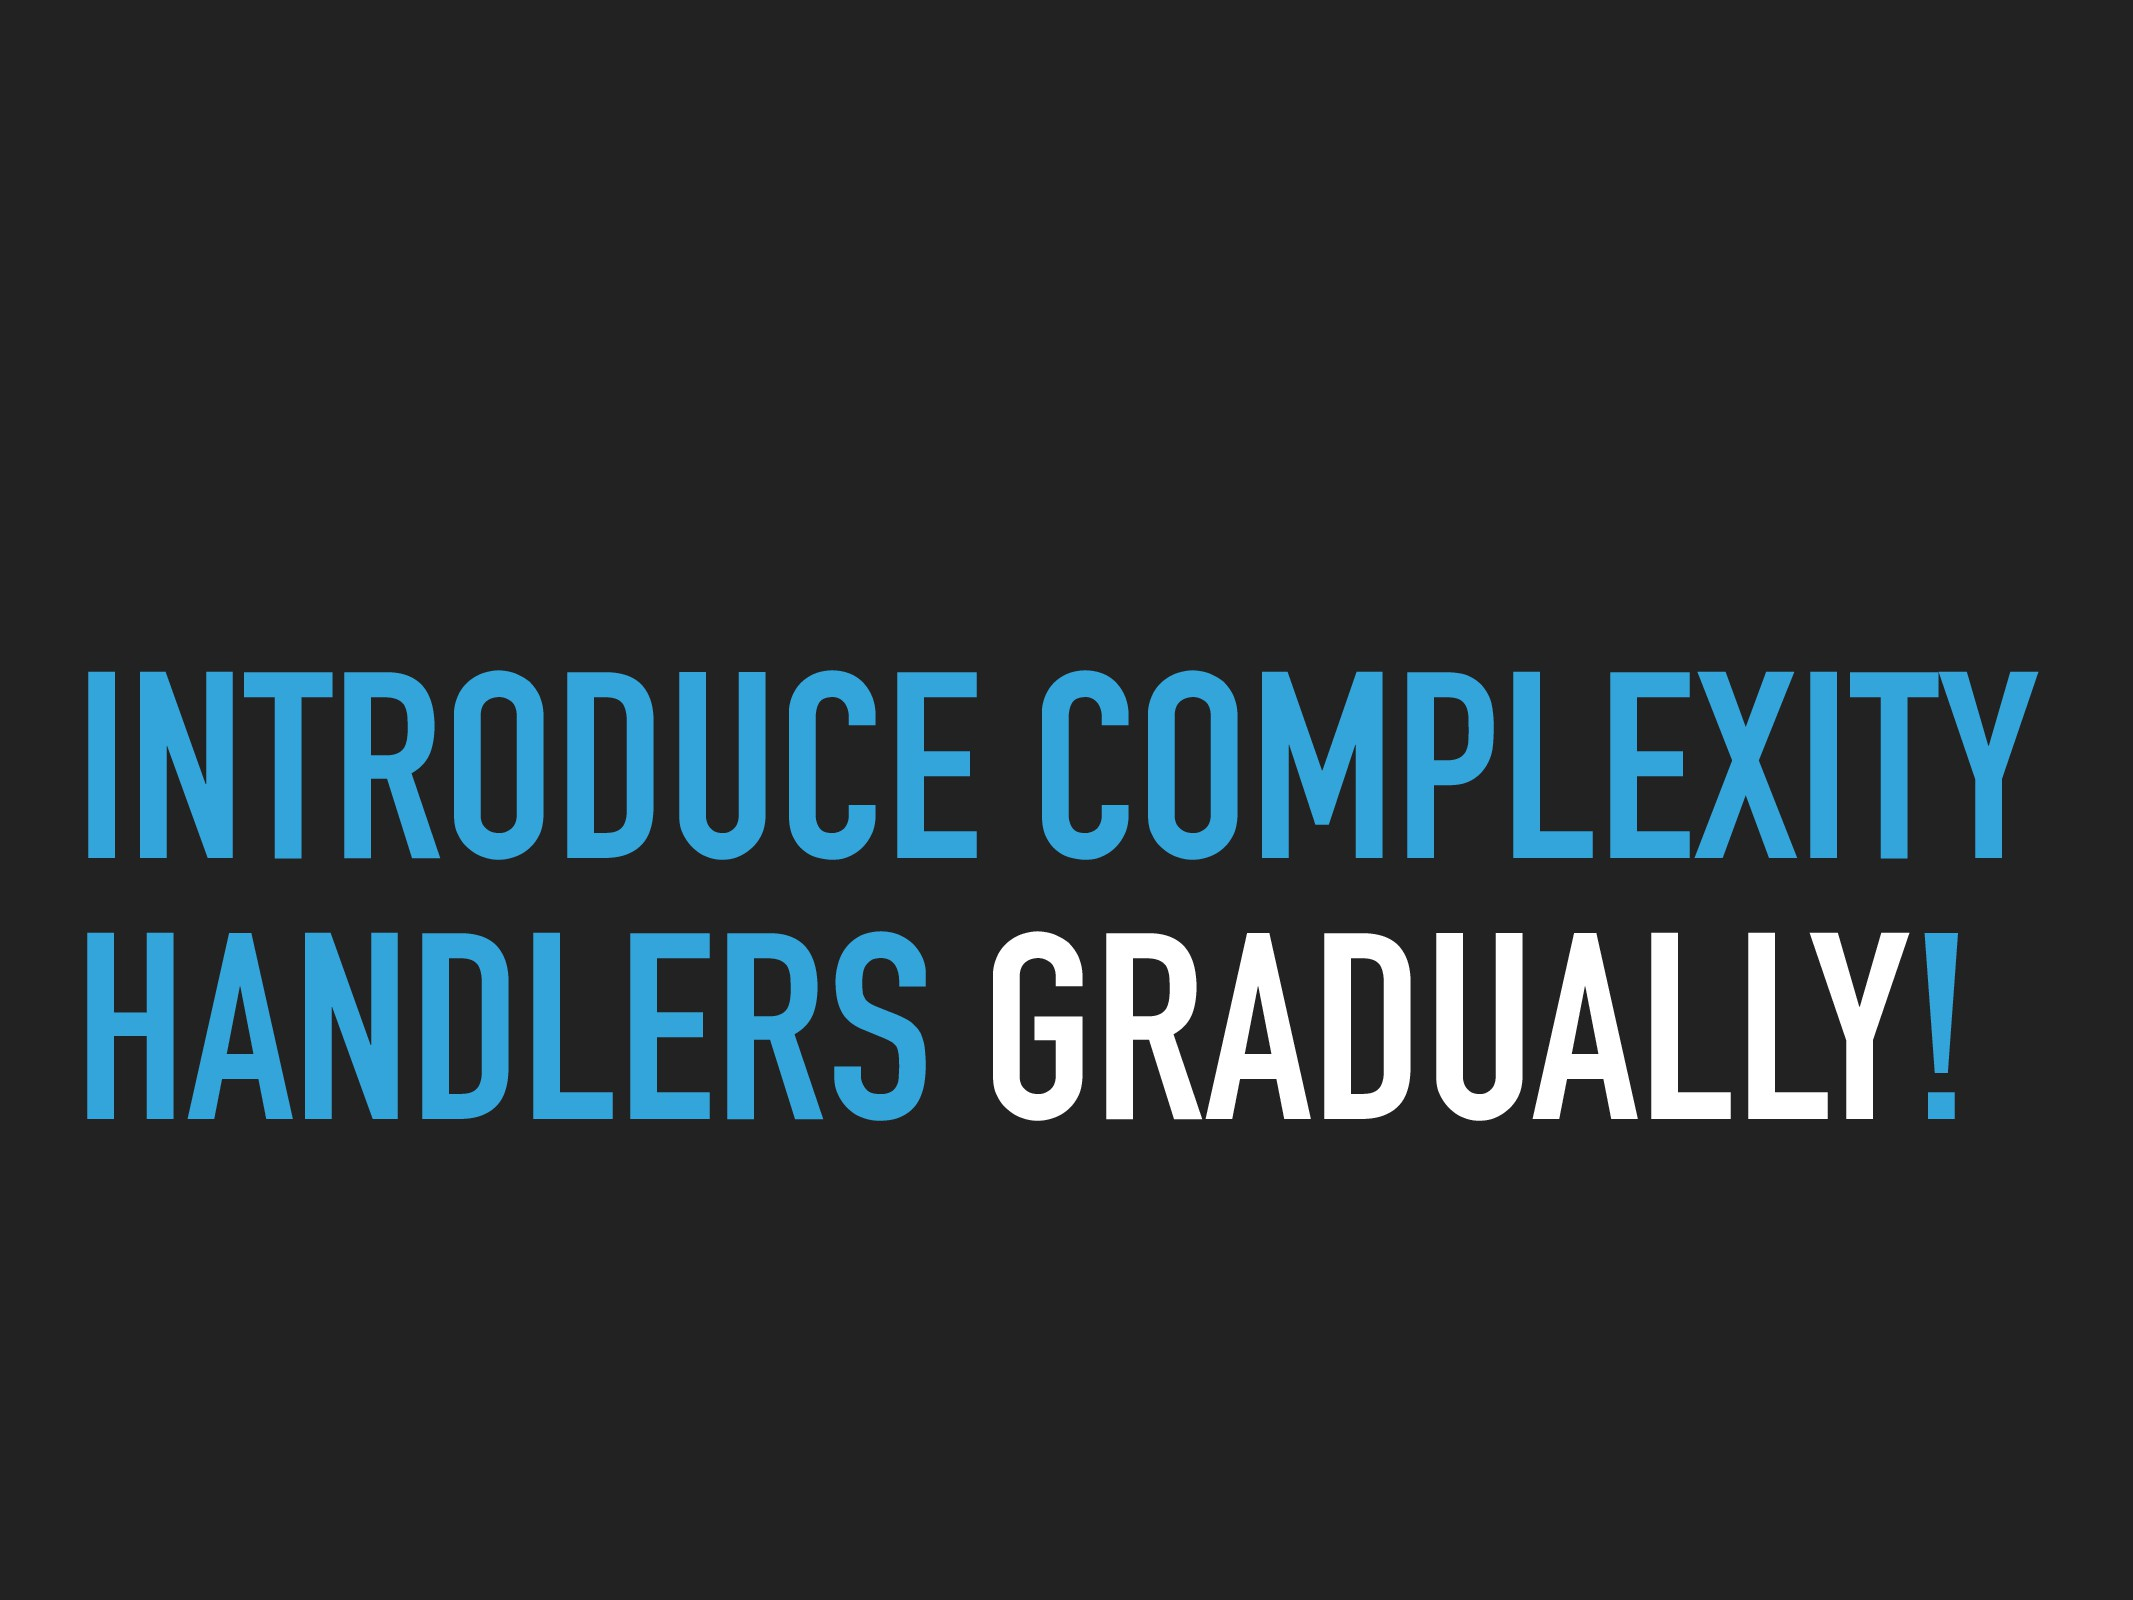 INTRODUCE COMPLEXITY HANDLERS GRADUALLY!